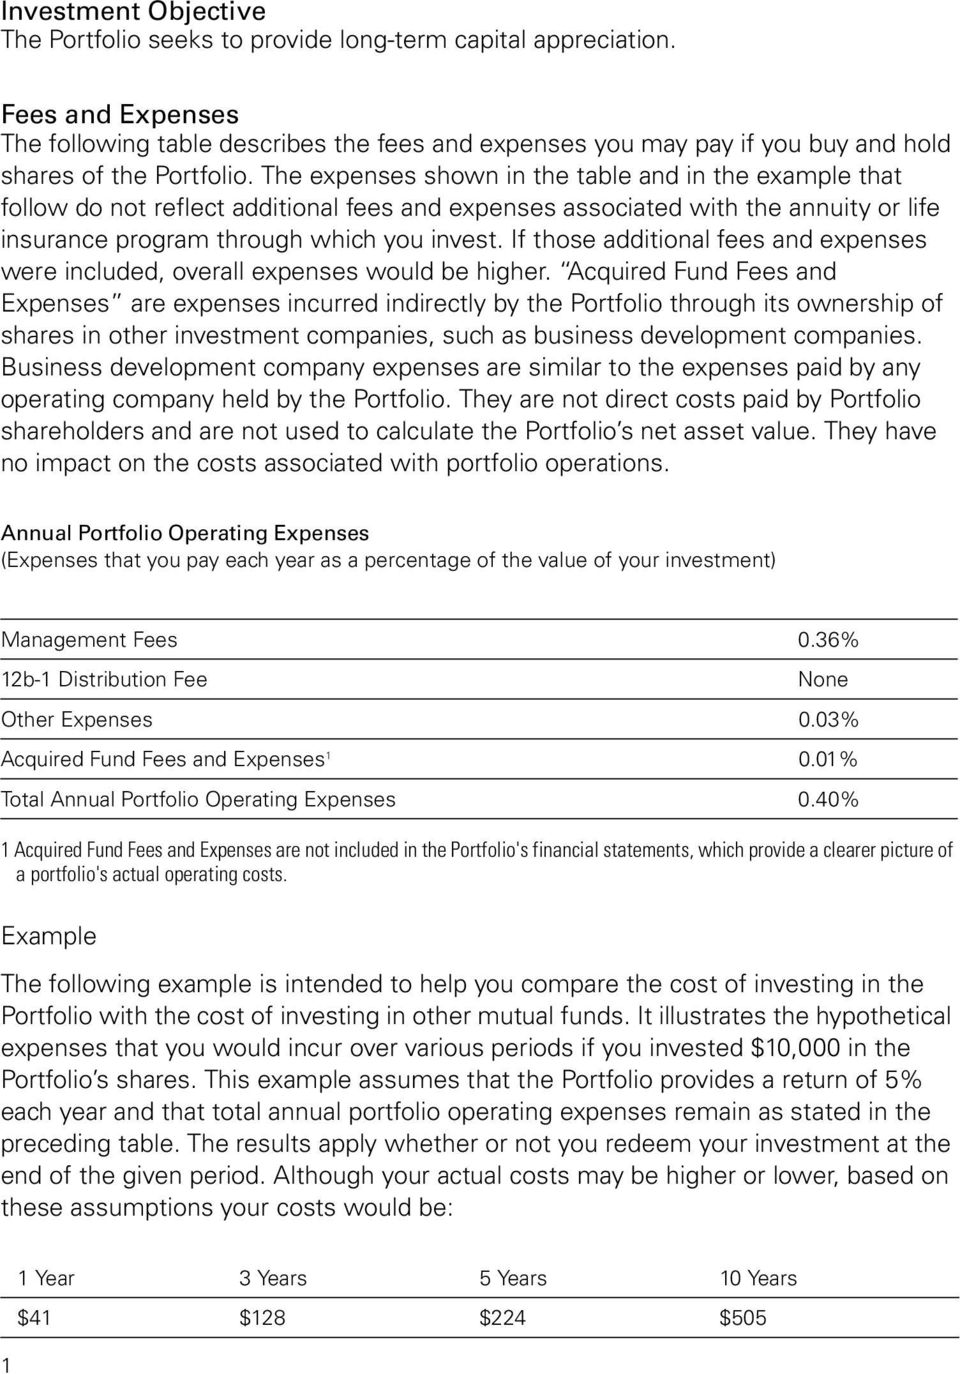 The expenses shown in the table and in the example that follow do not reflect additional fees and expenses associated with the annuity or life insurance program through which you invest.